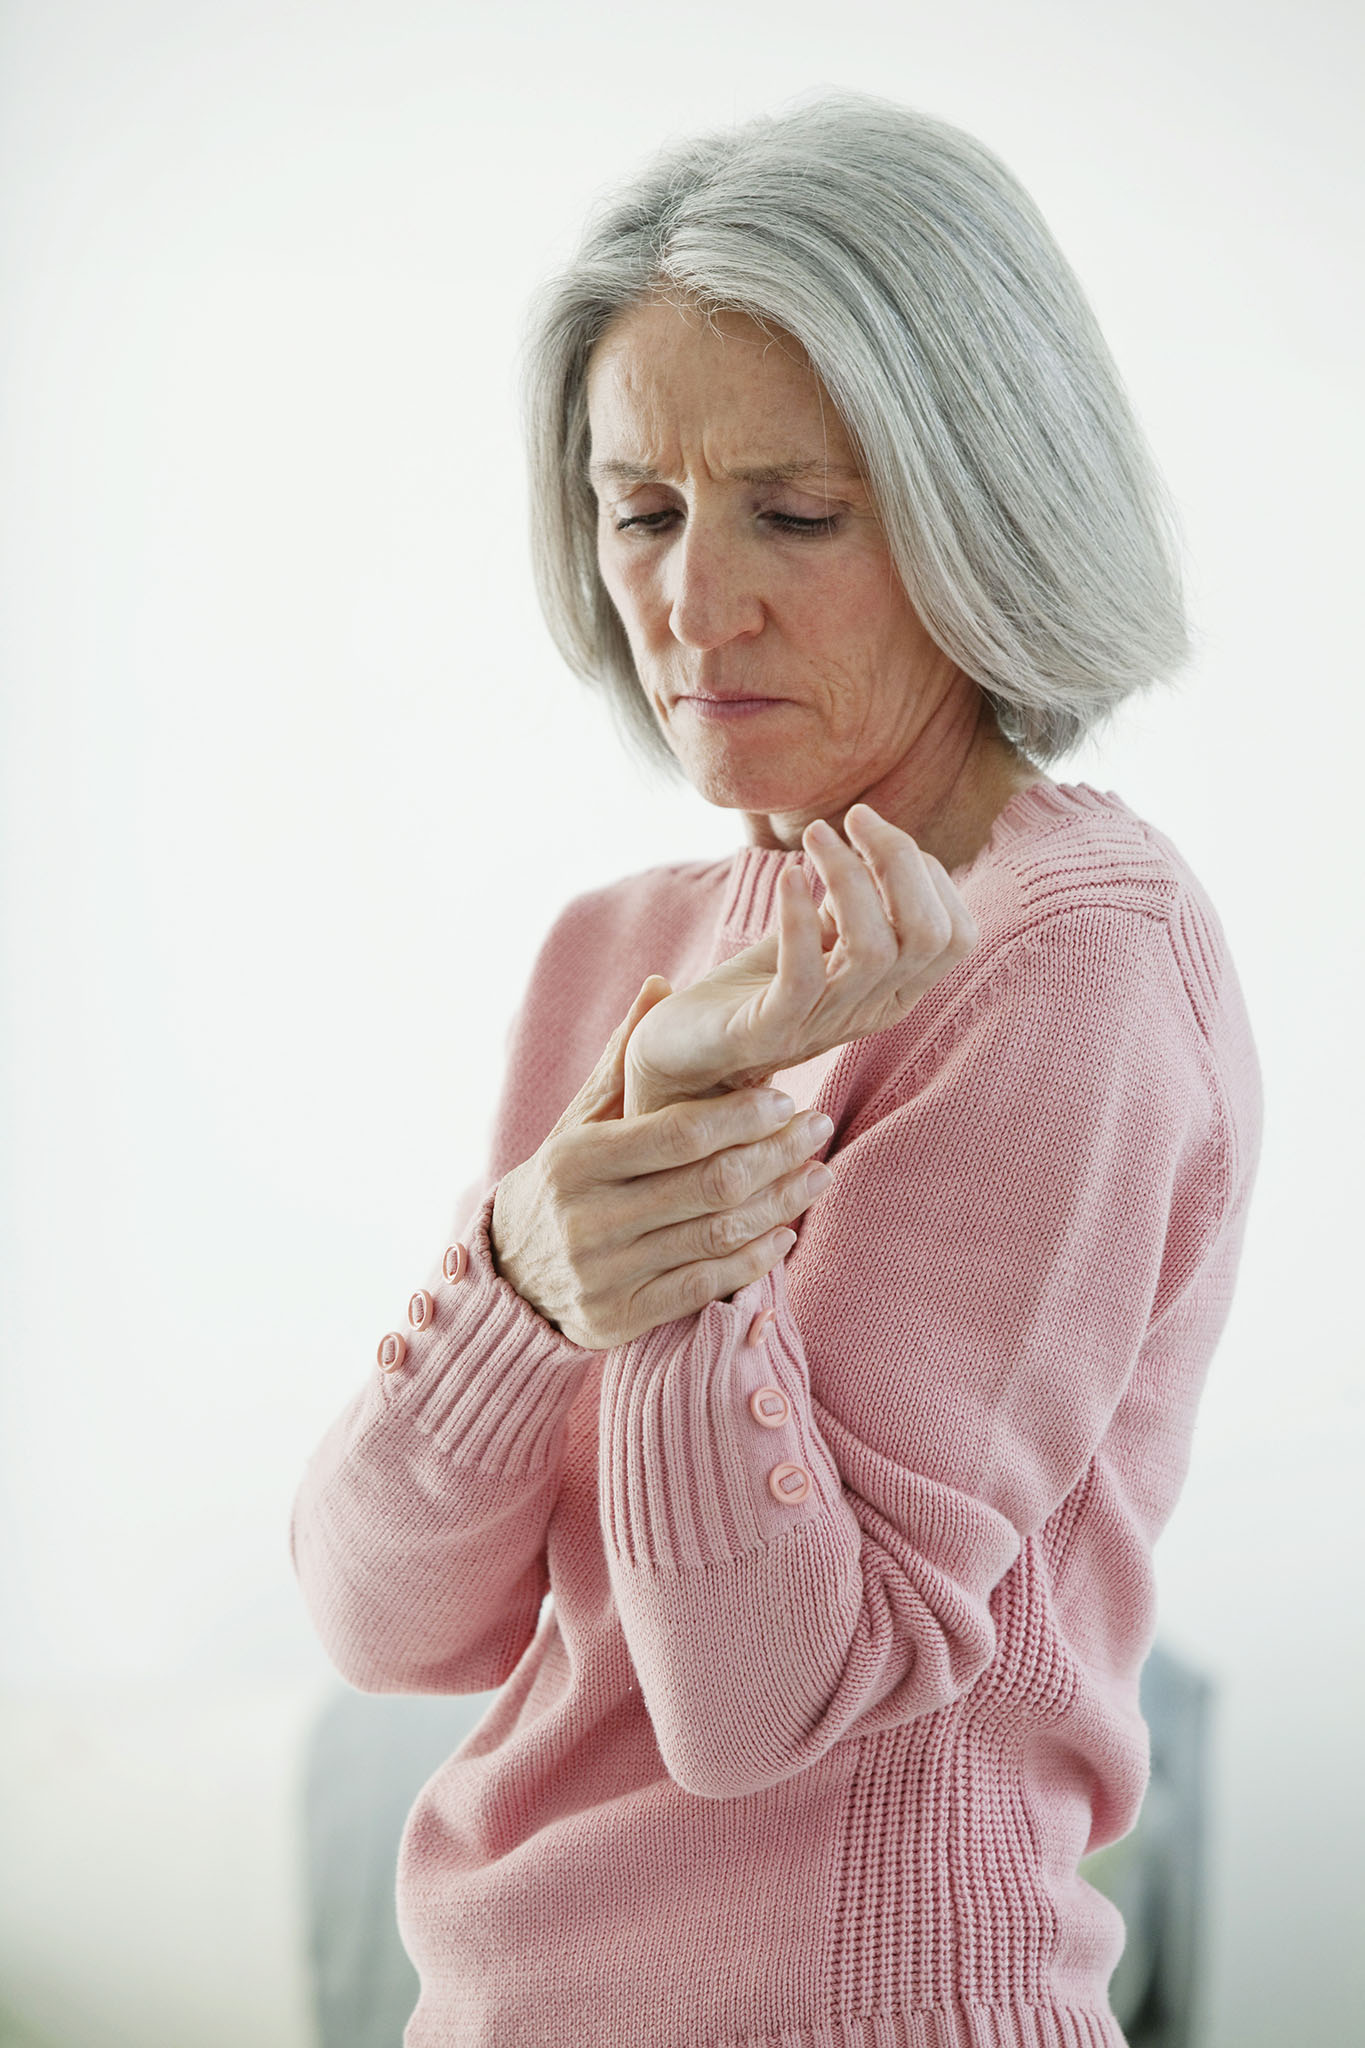 Elderly women examining her sore wrist